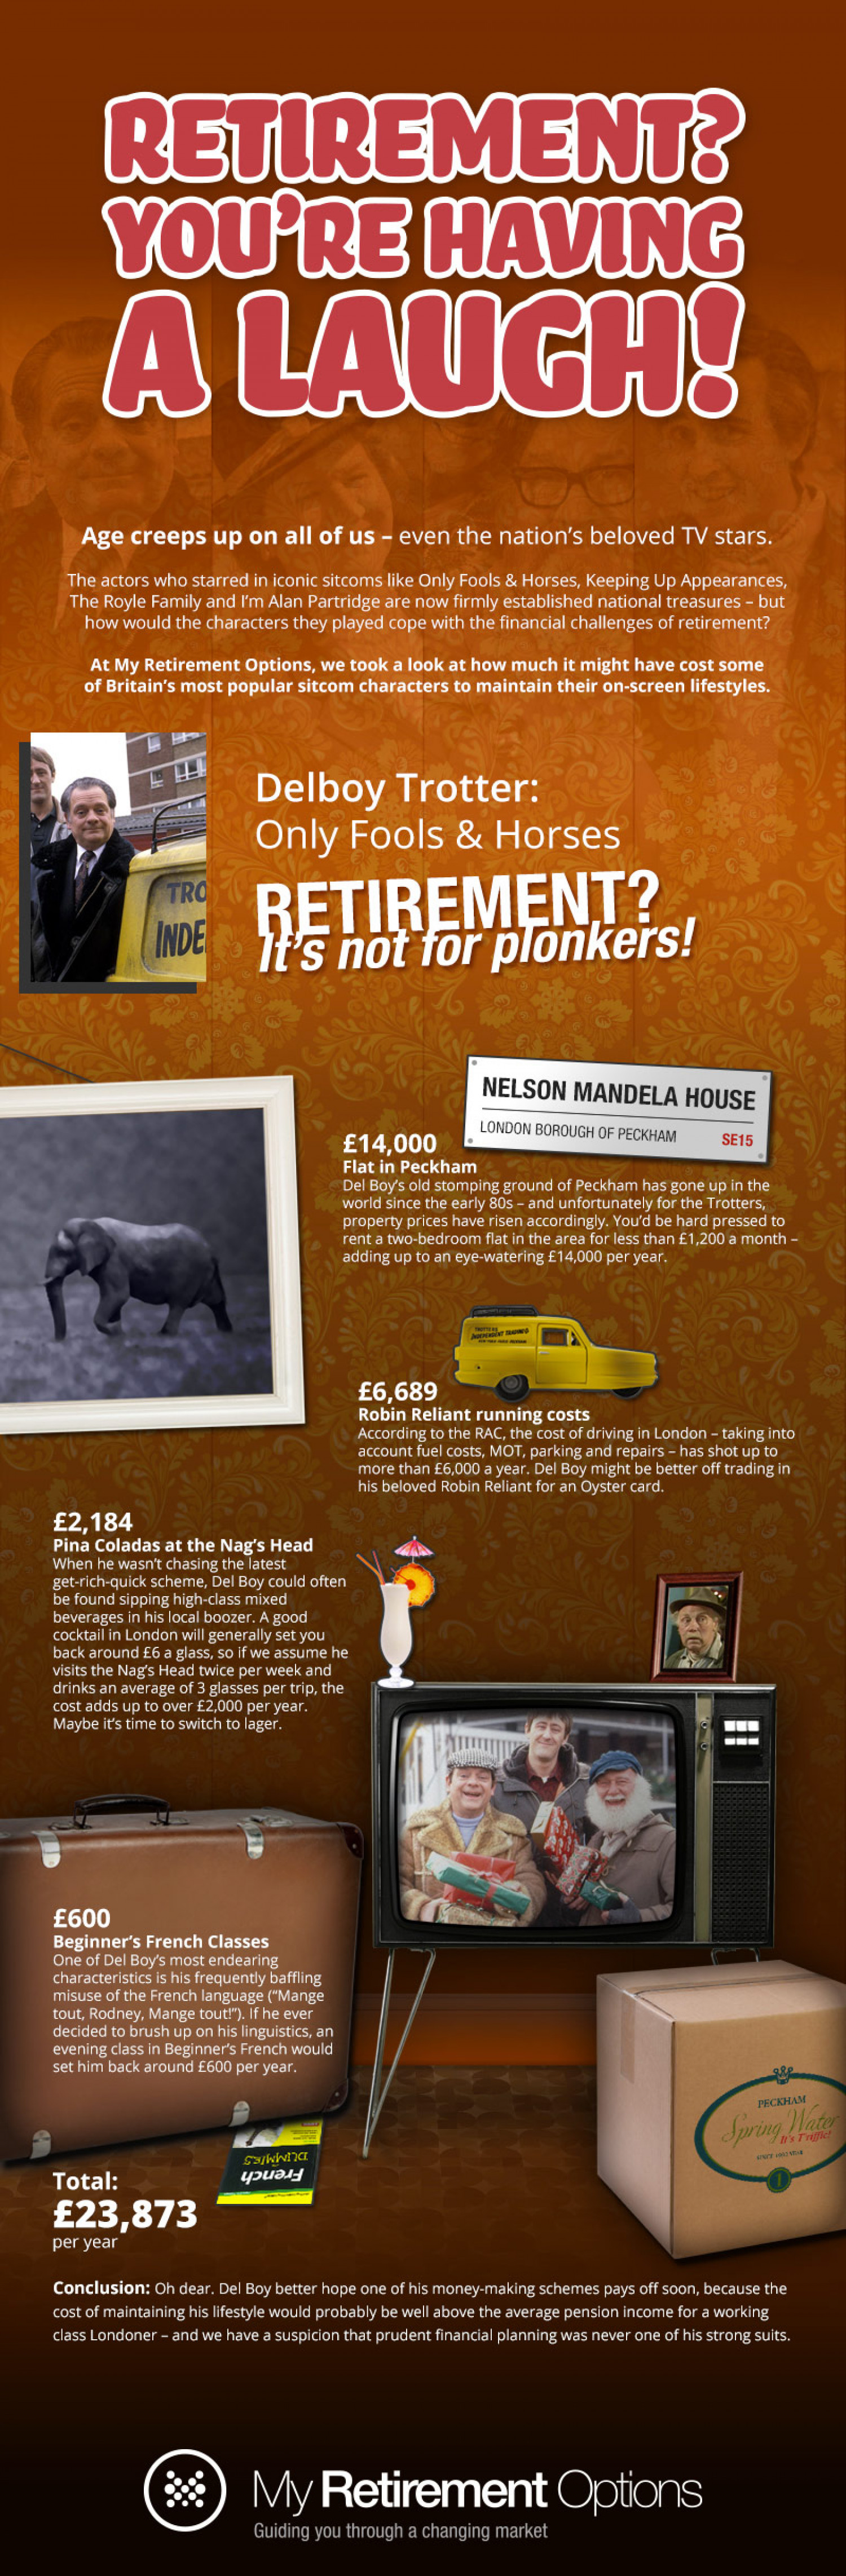 Retirement? You're Having a Laugh - Del Boy Trotter Infographic